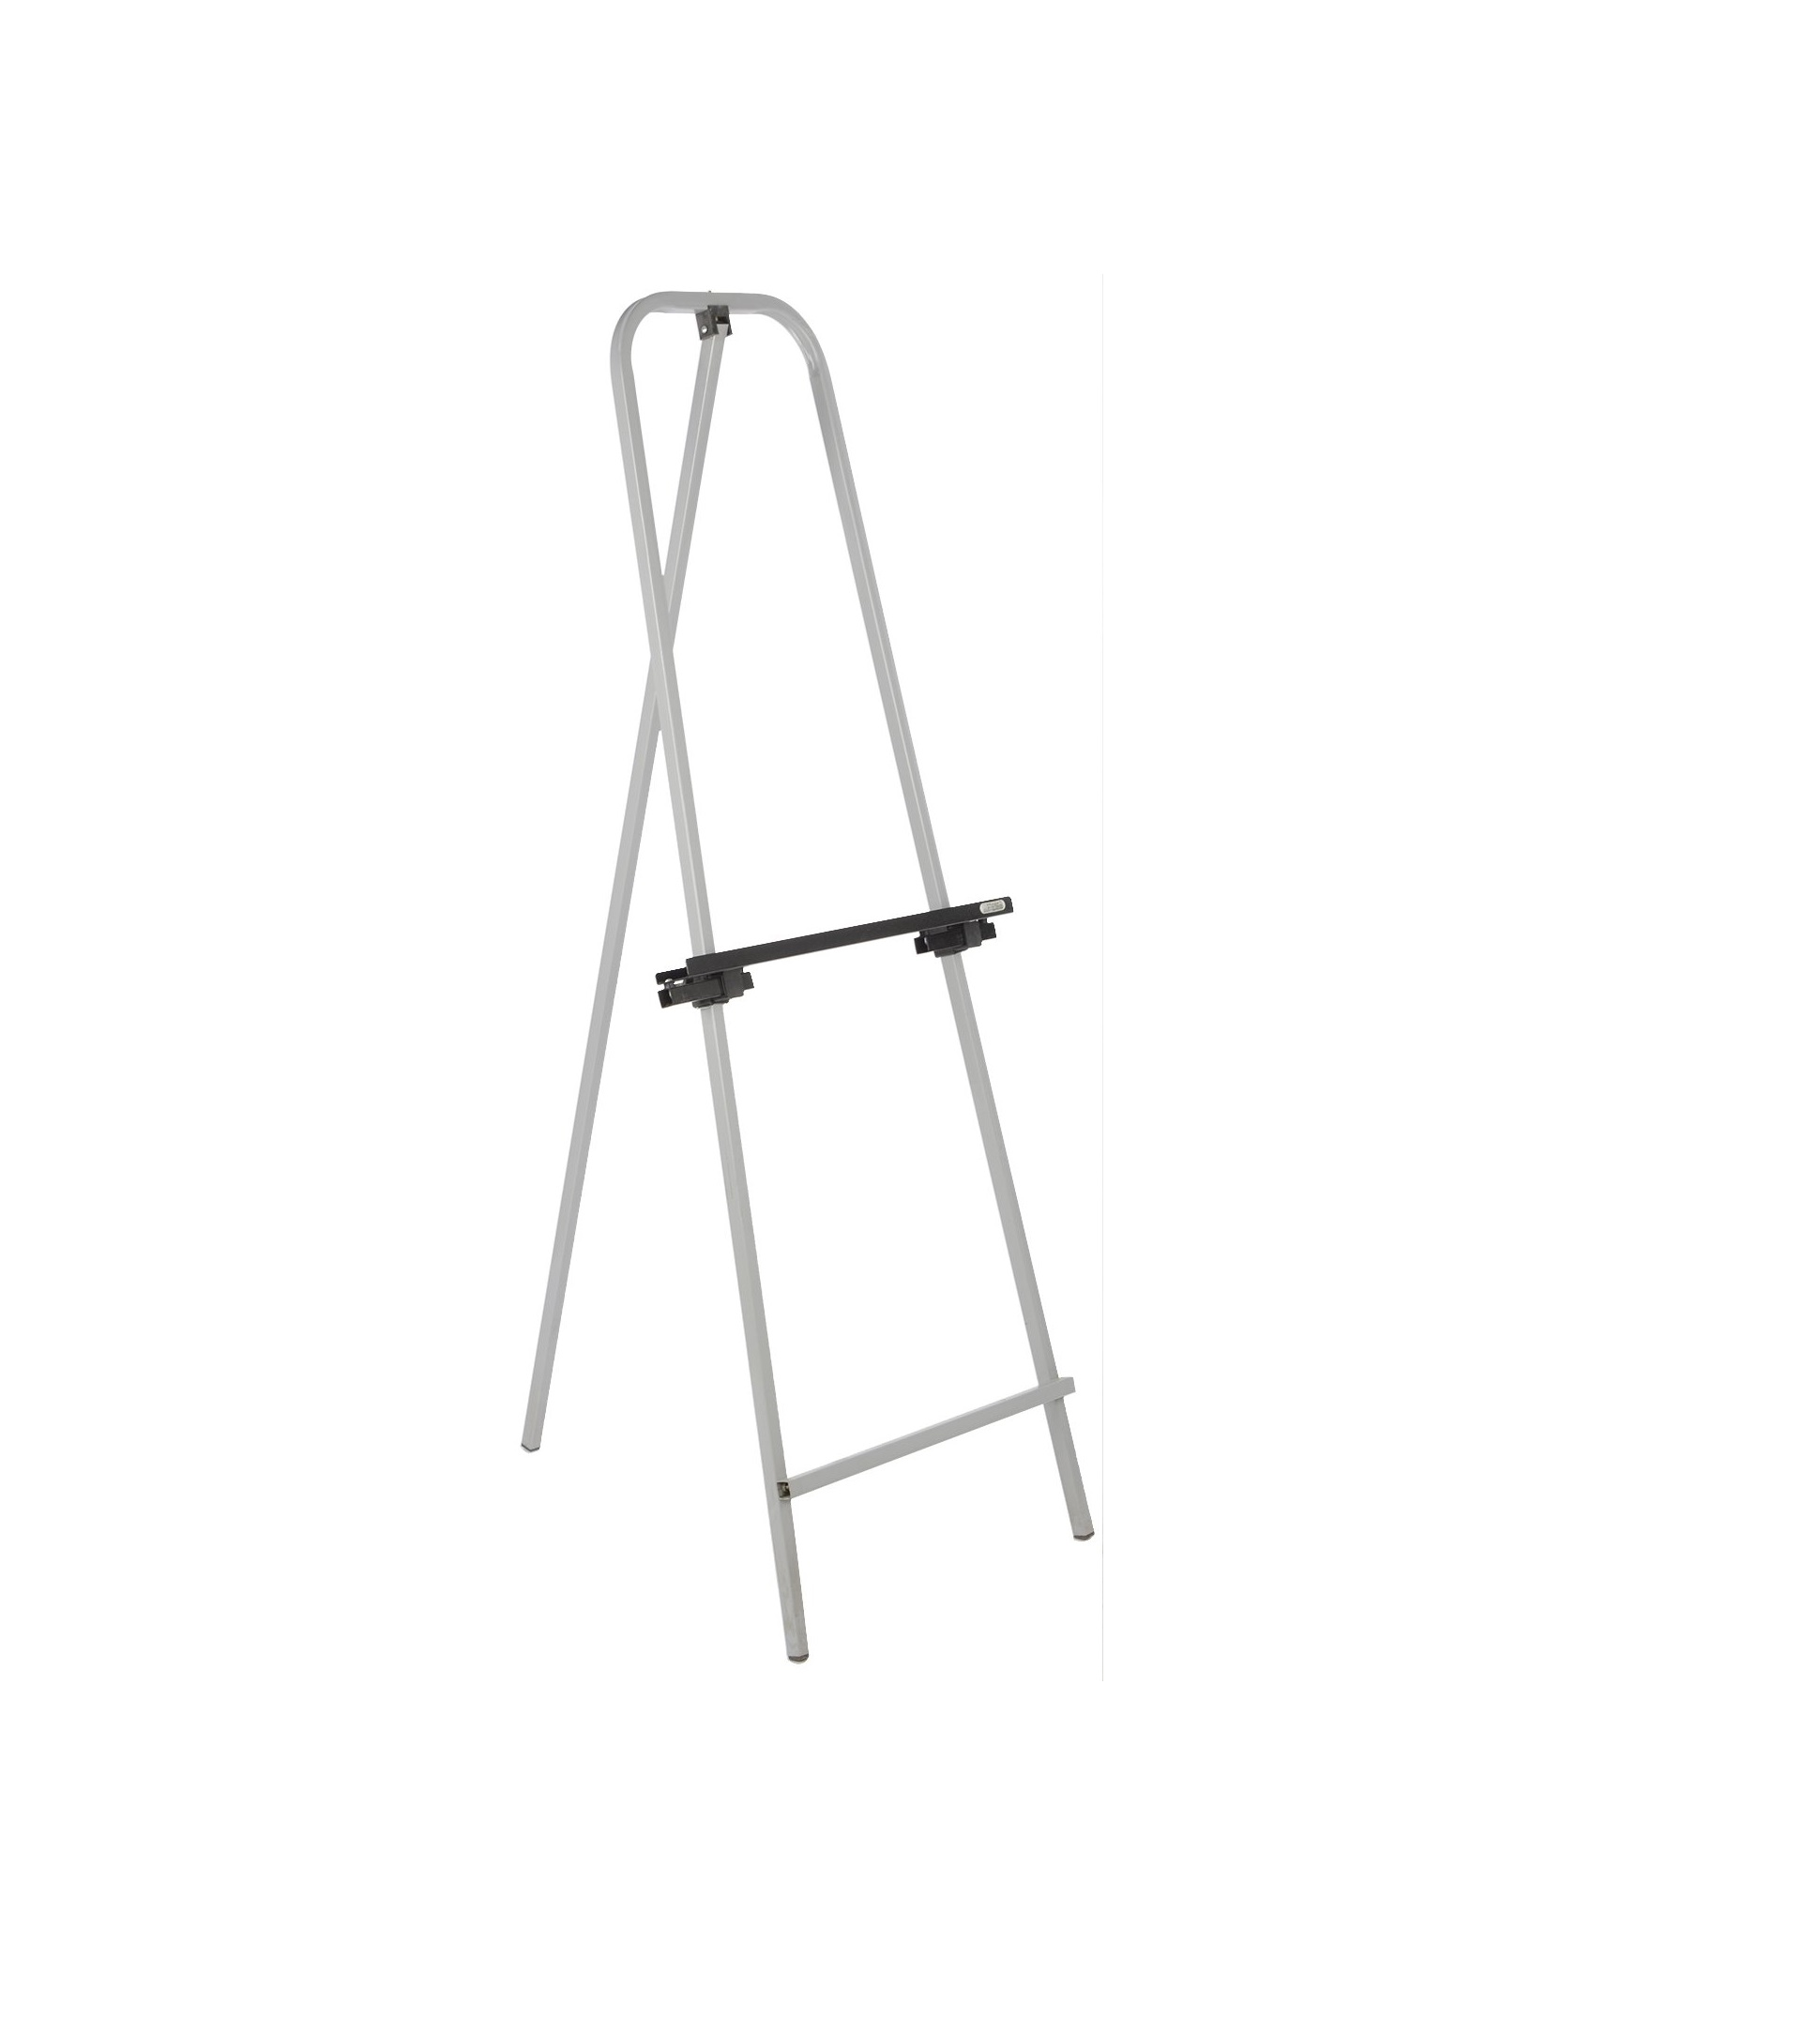 Lightweight Steel Easel, Fixed-Type Stand For Presentation, Display And Painting